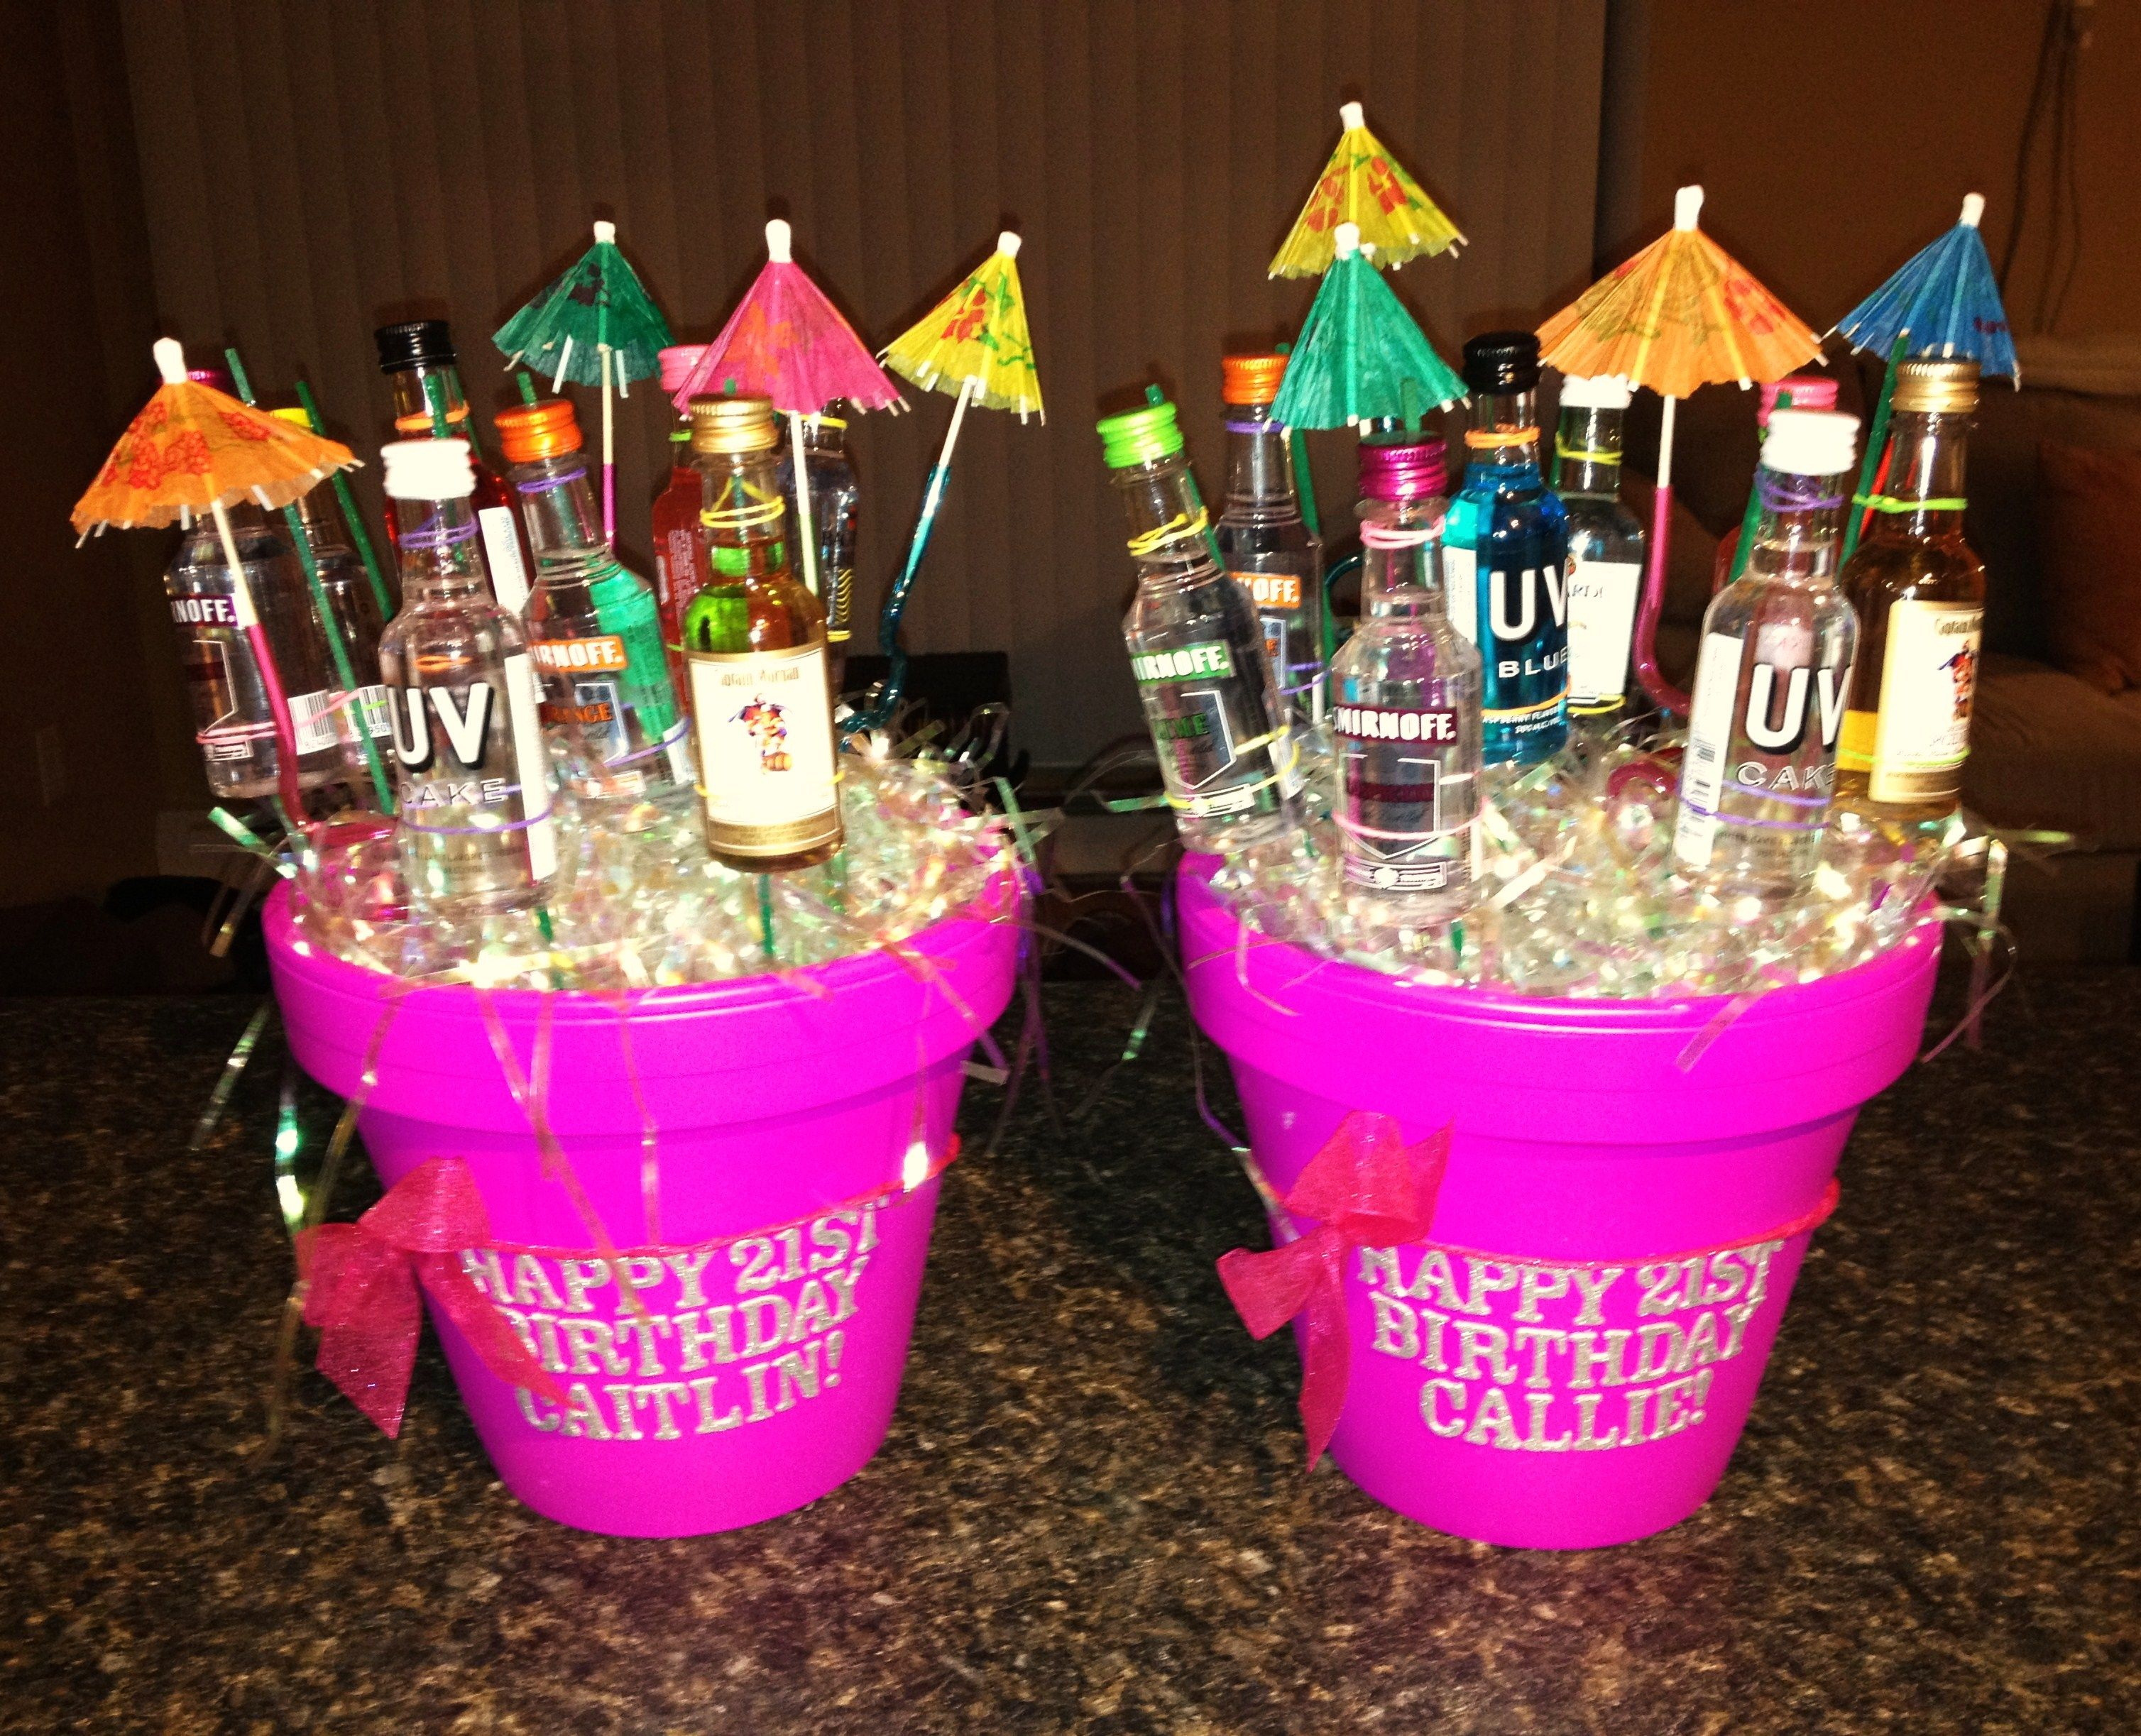 birthday bouquets flower pot with mini liquor bottles crazy straws and cocktail umbrellas. Black Bedroom Furniture Sets. Home Design Ideas